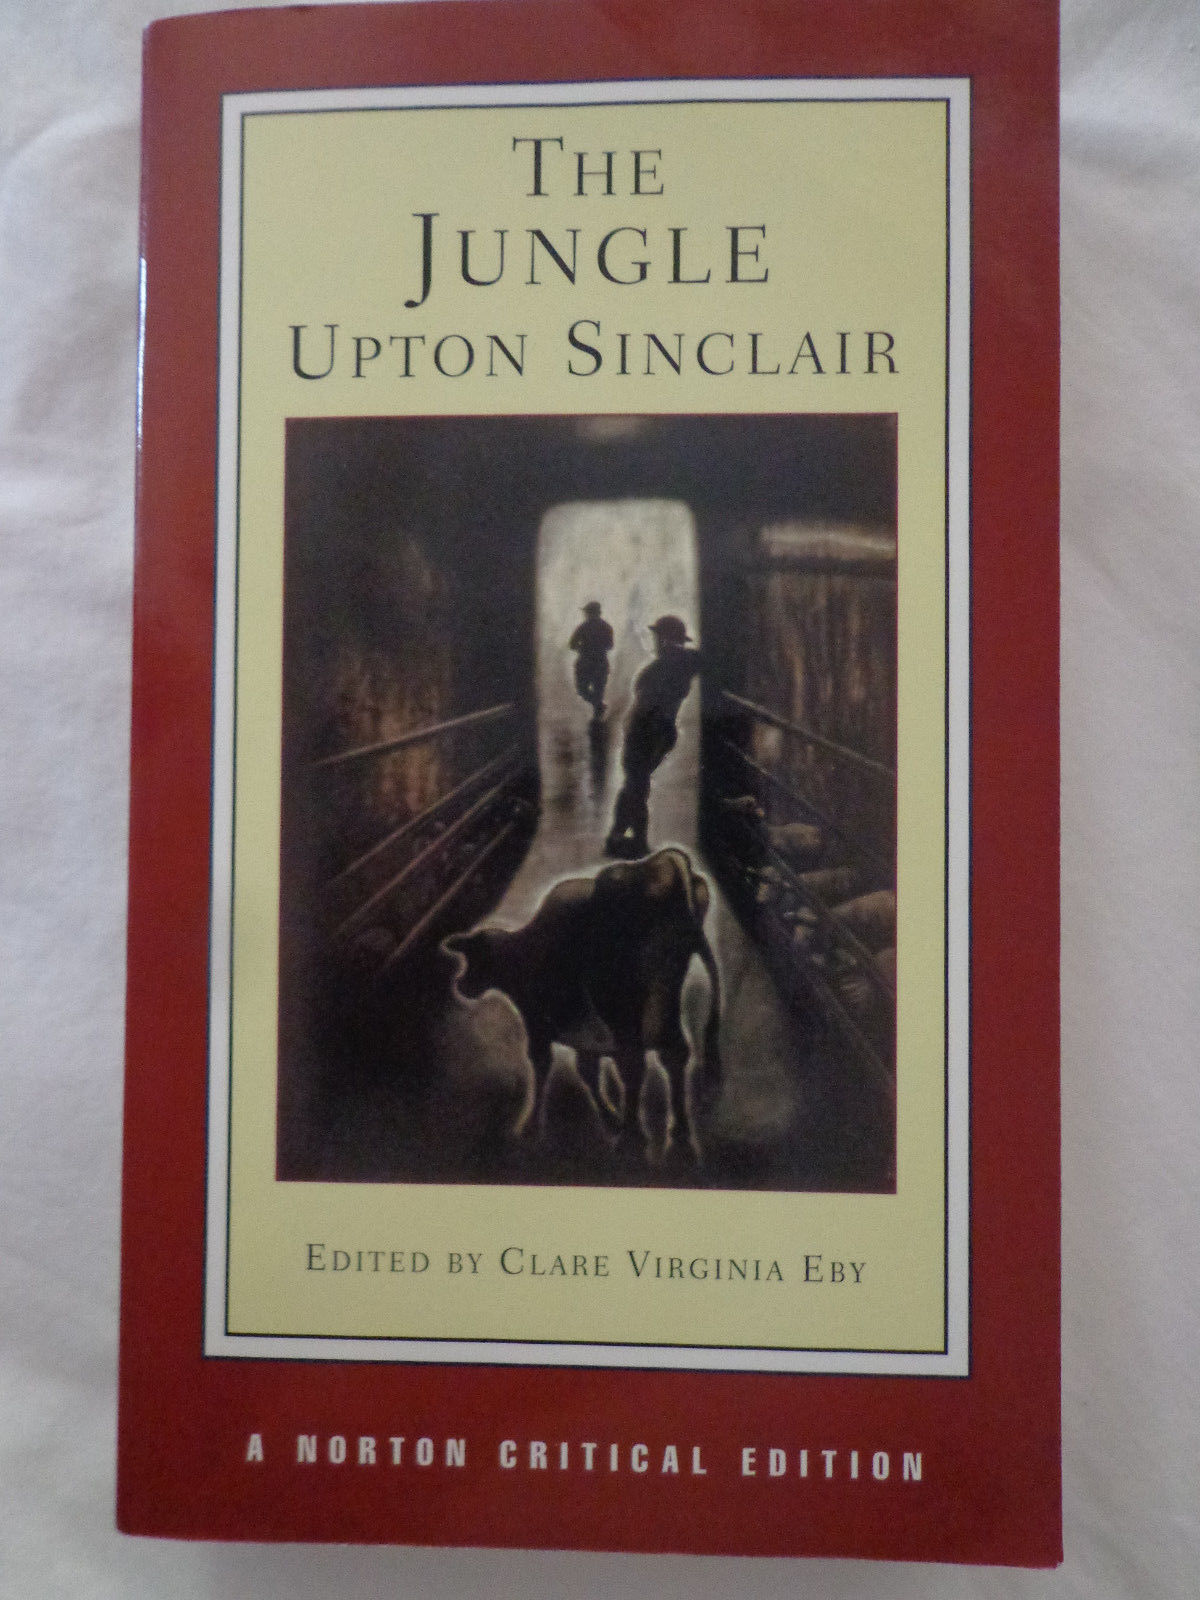 an analysis of the jungle a novel by upton sinclair English project: summary of the jungle by upton sinclair - duration: 7:40 noopdude1 11,260 views the jungle chapter 9 audio book - duration: 25:25.